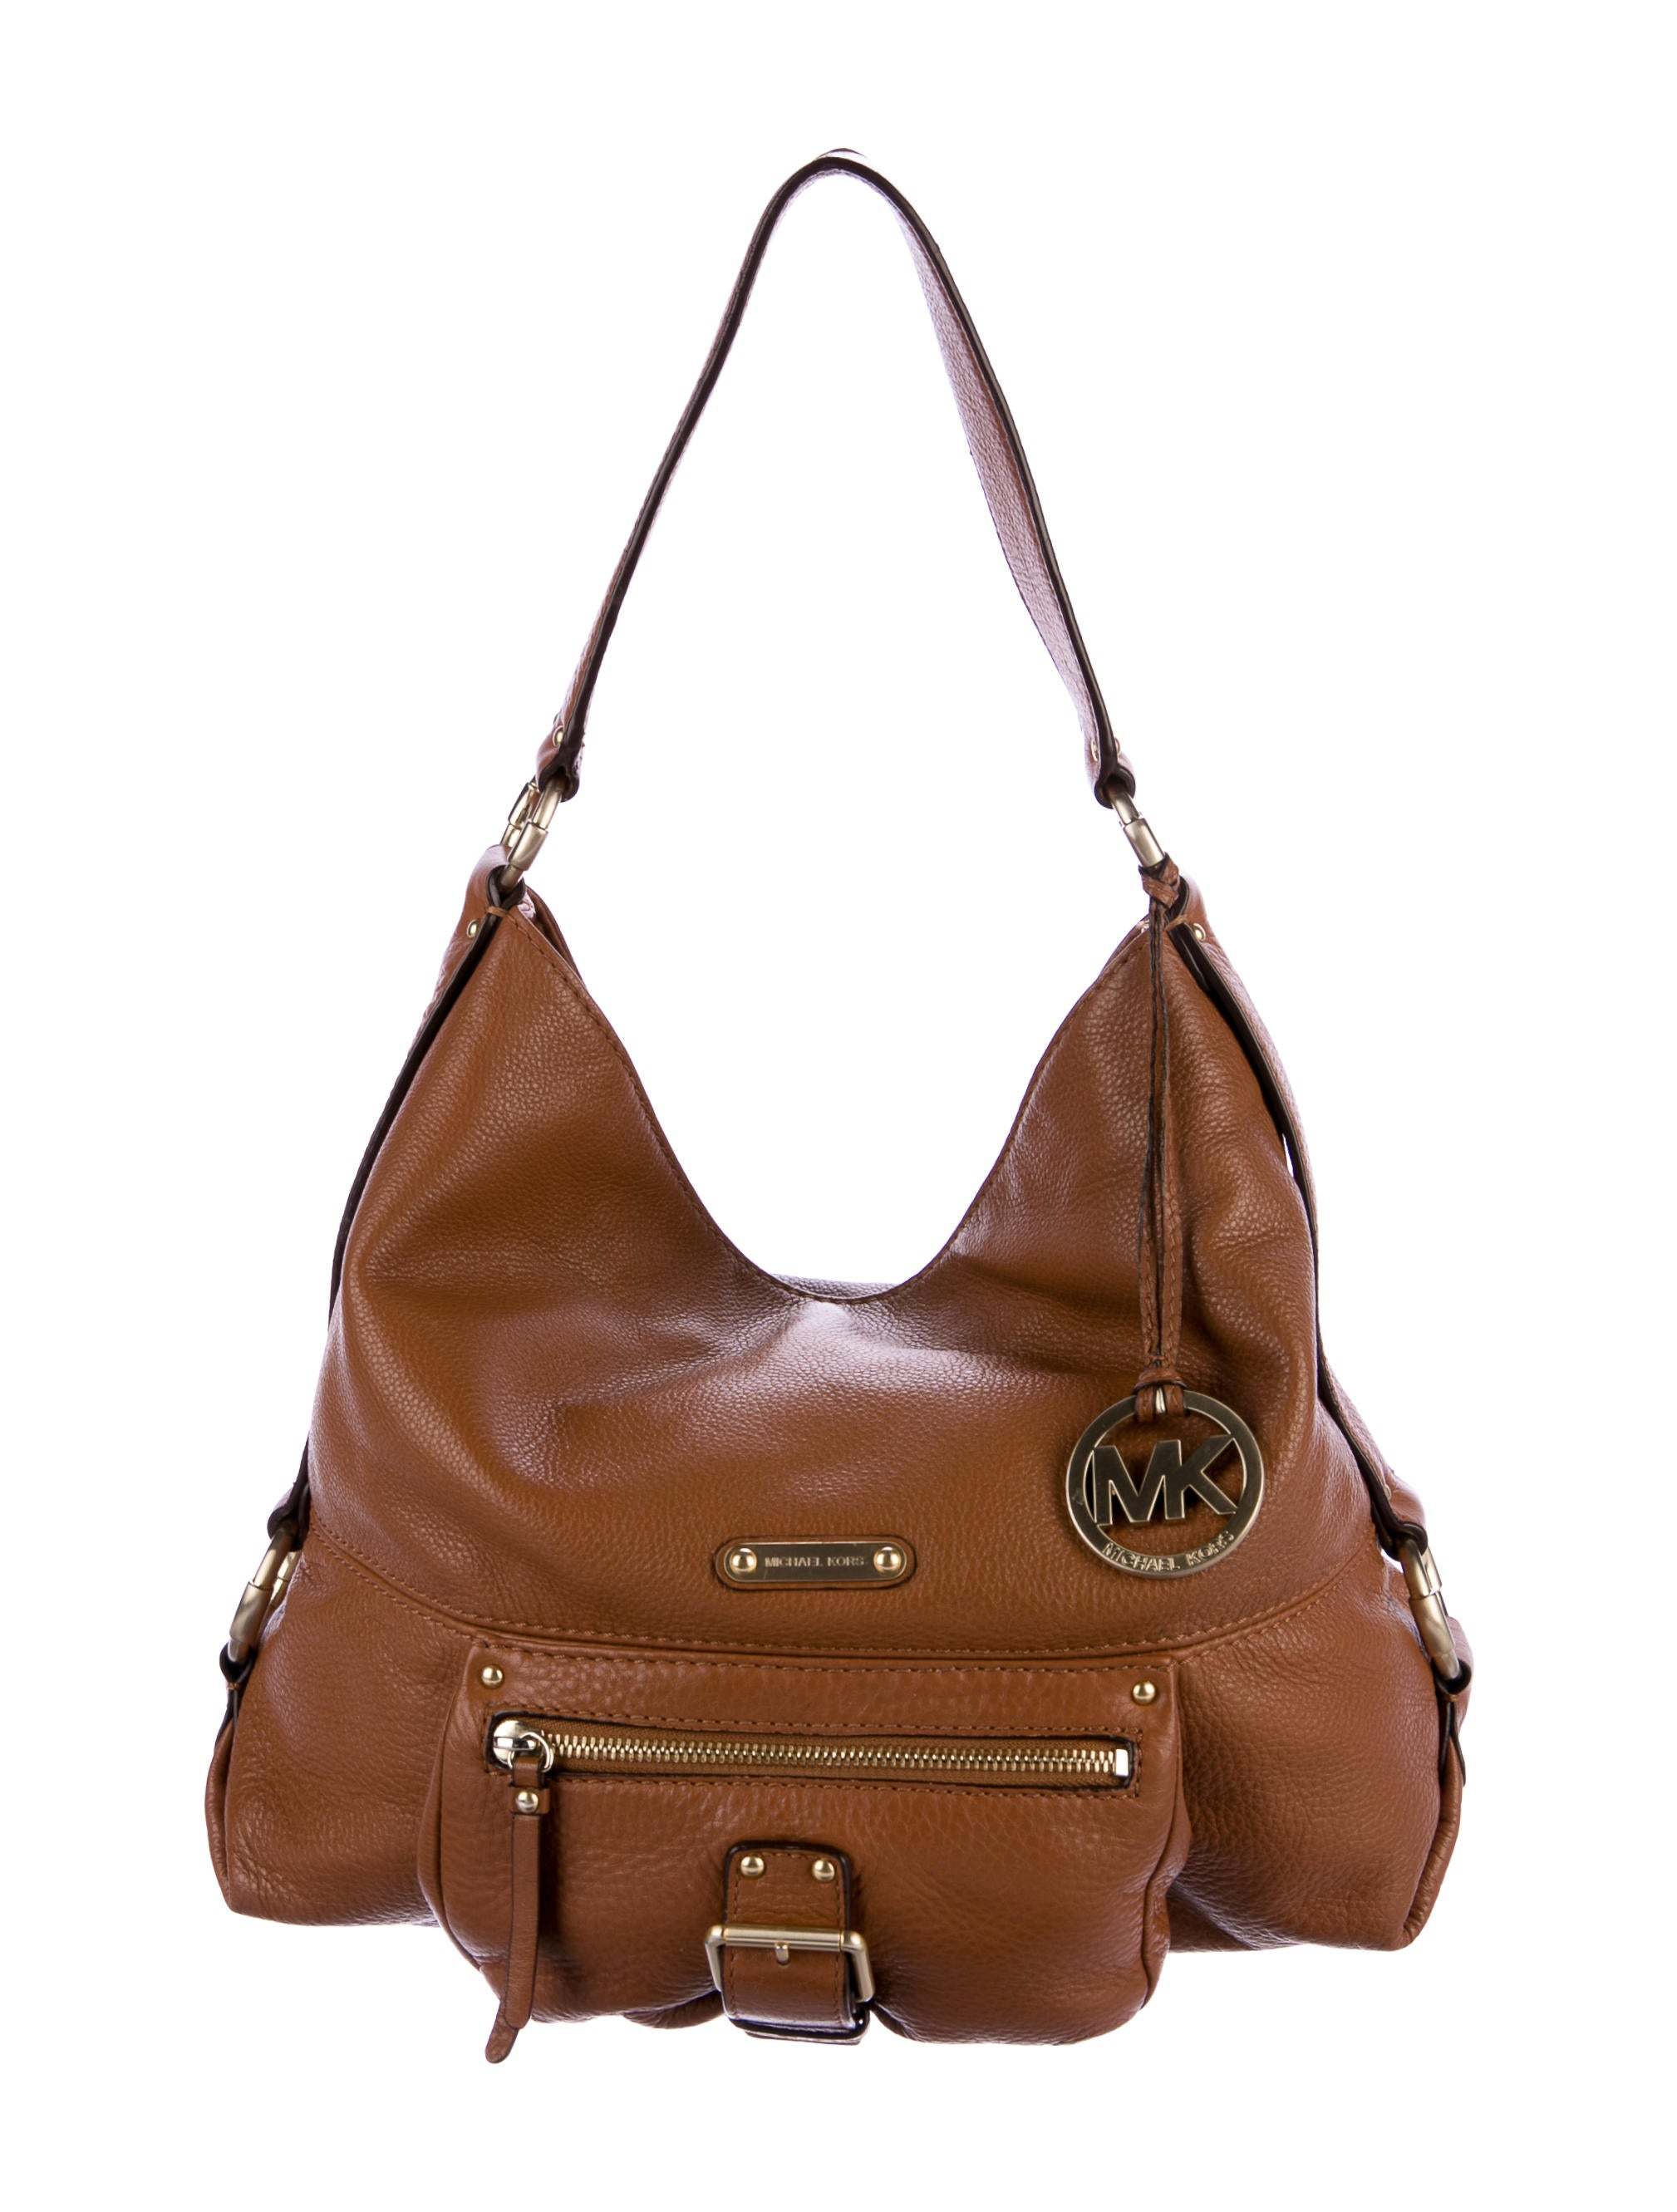 Are Michael Kors Purses Real Leather | Mount Mercy University